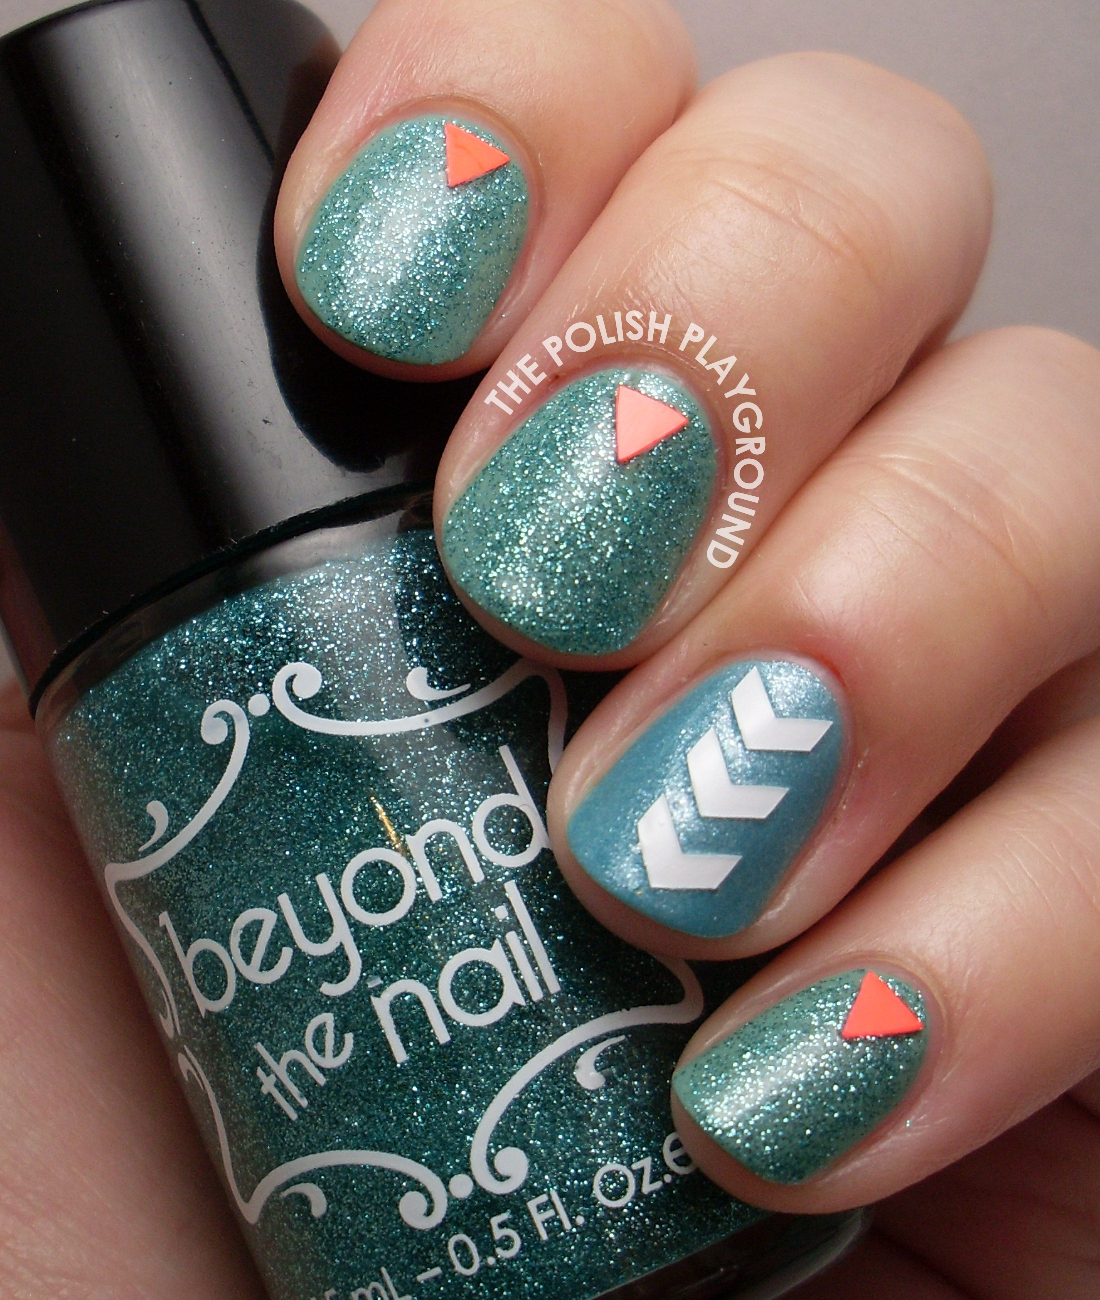 Beyond the Nail - Nail Decal Vinyl Nail Art